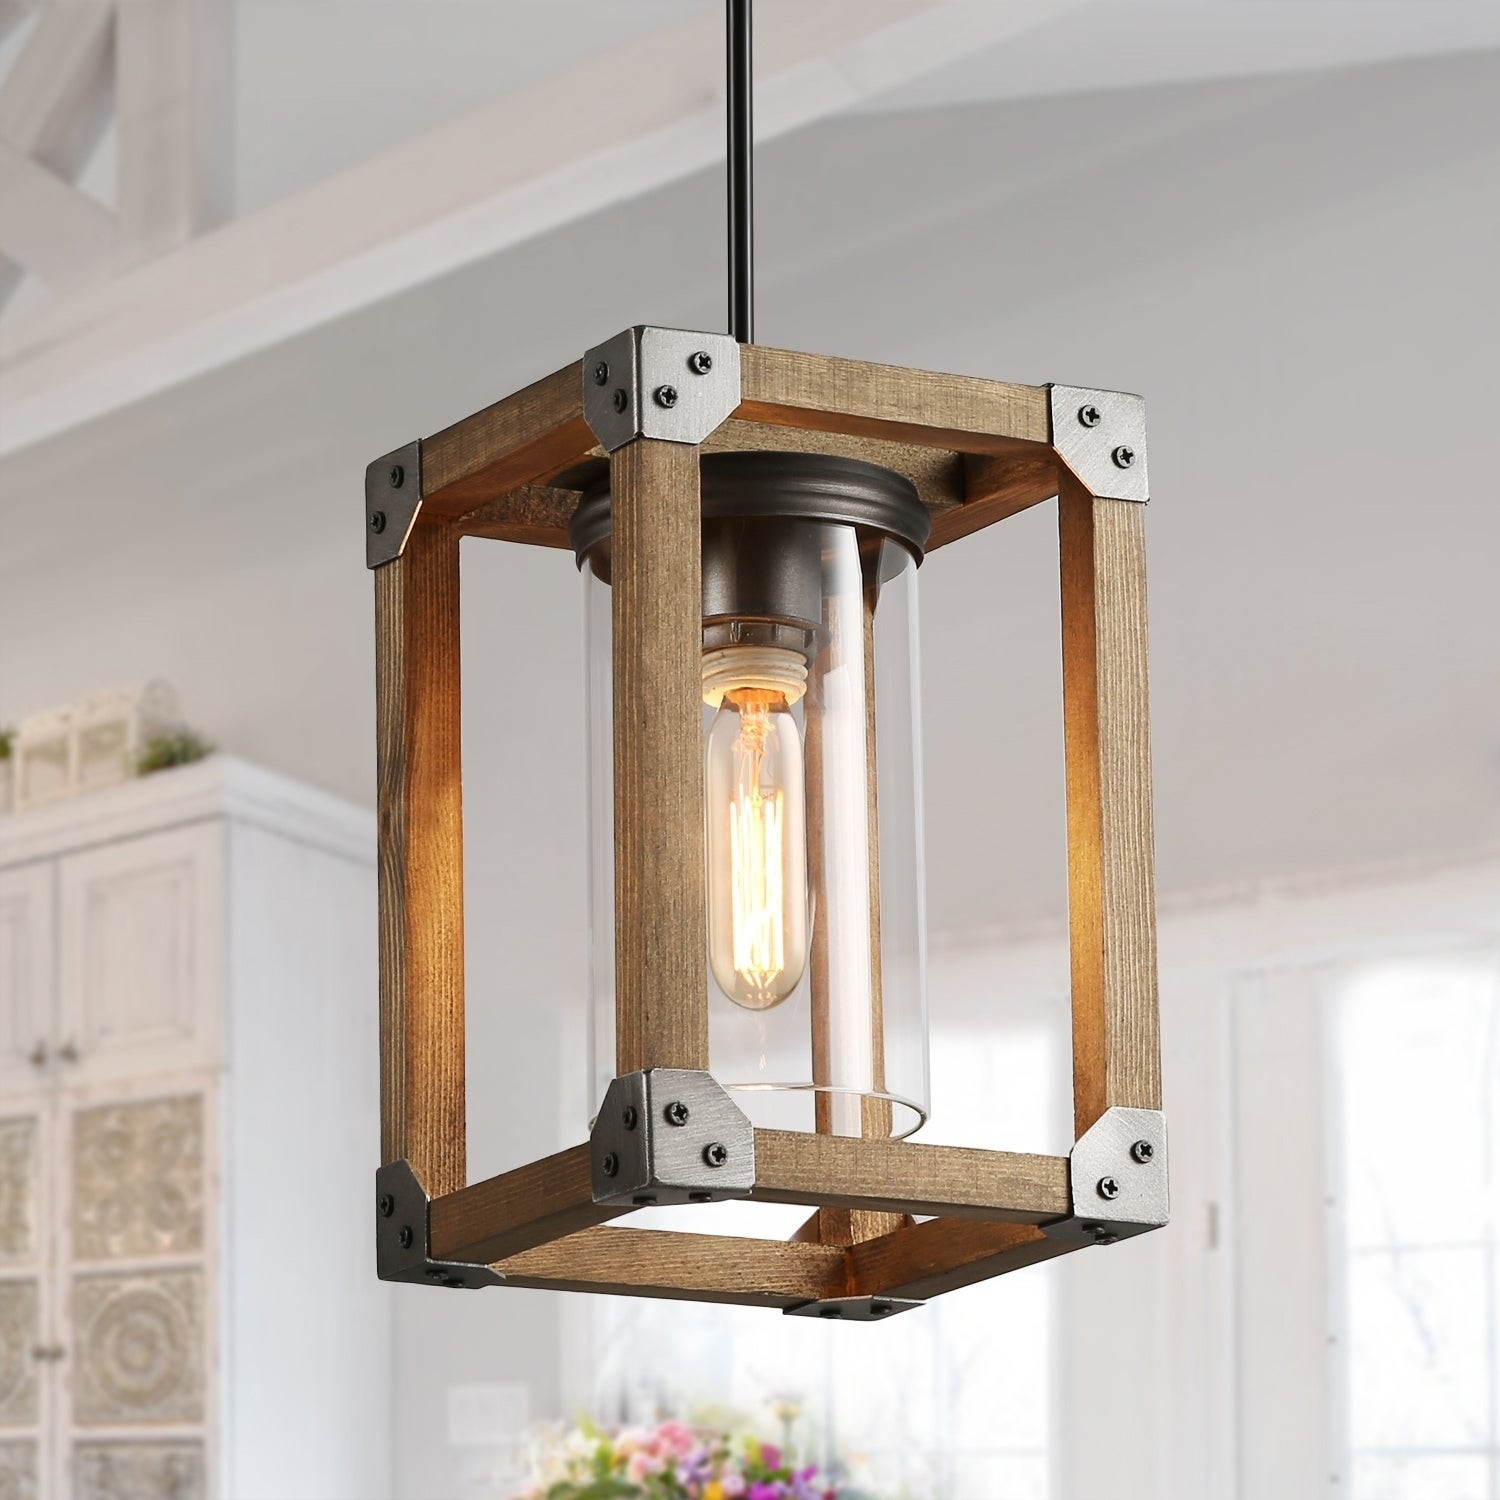 The Gray Barn Horse Hollow 1 Light Disdressed Wood Hanging Lighting Industrial Mini Pendant For Kitchen Island N A